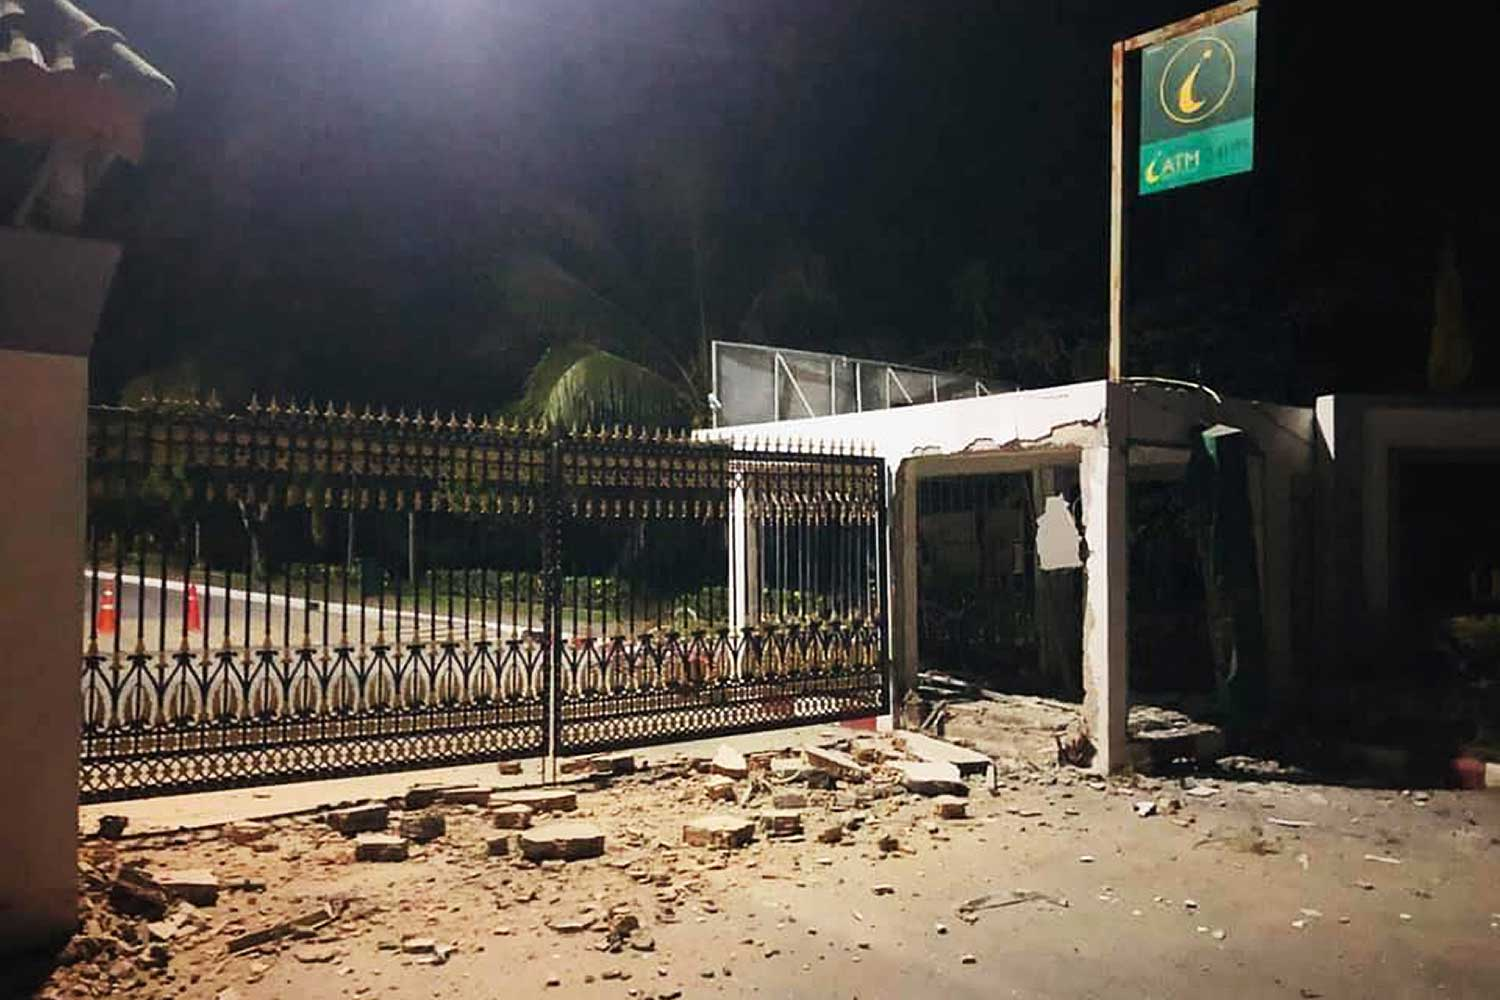 Islamic Bank ATM damaged by bomb in Pattani. (Photo by Abdullah Benjakat)